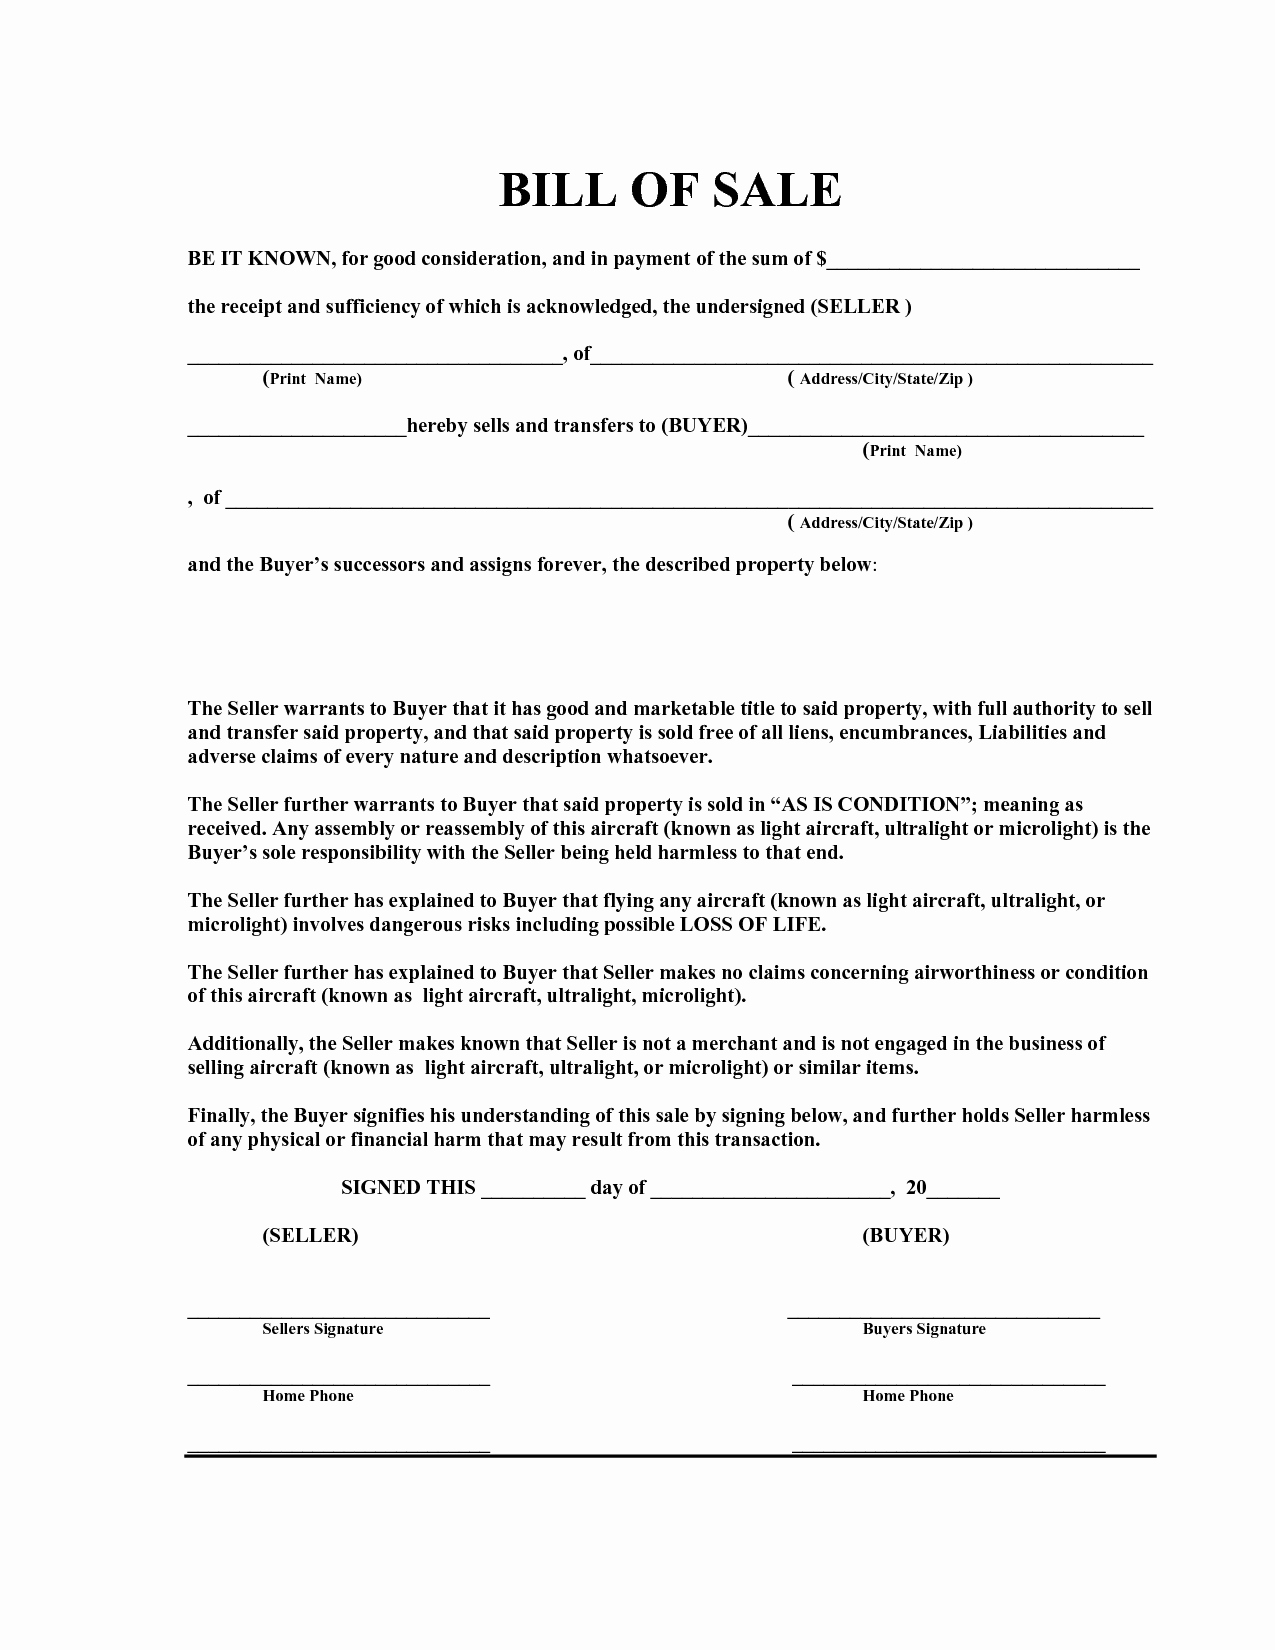 Bill Of Sale Texas Template New Free Bill Of Sale Template Pdf by Marymenti as is Bill